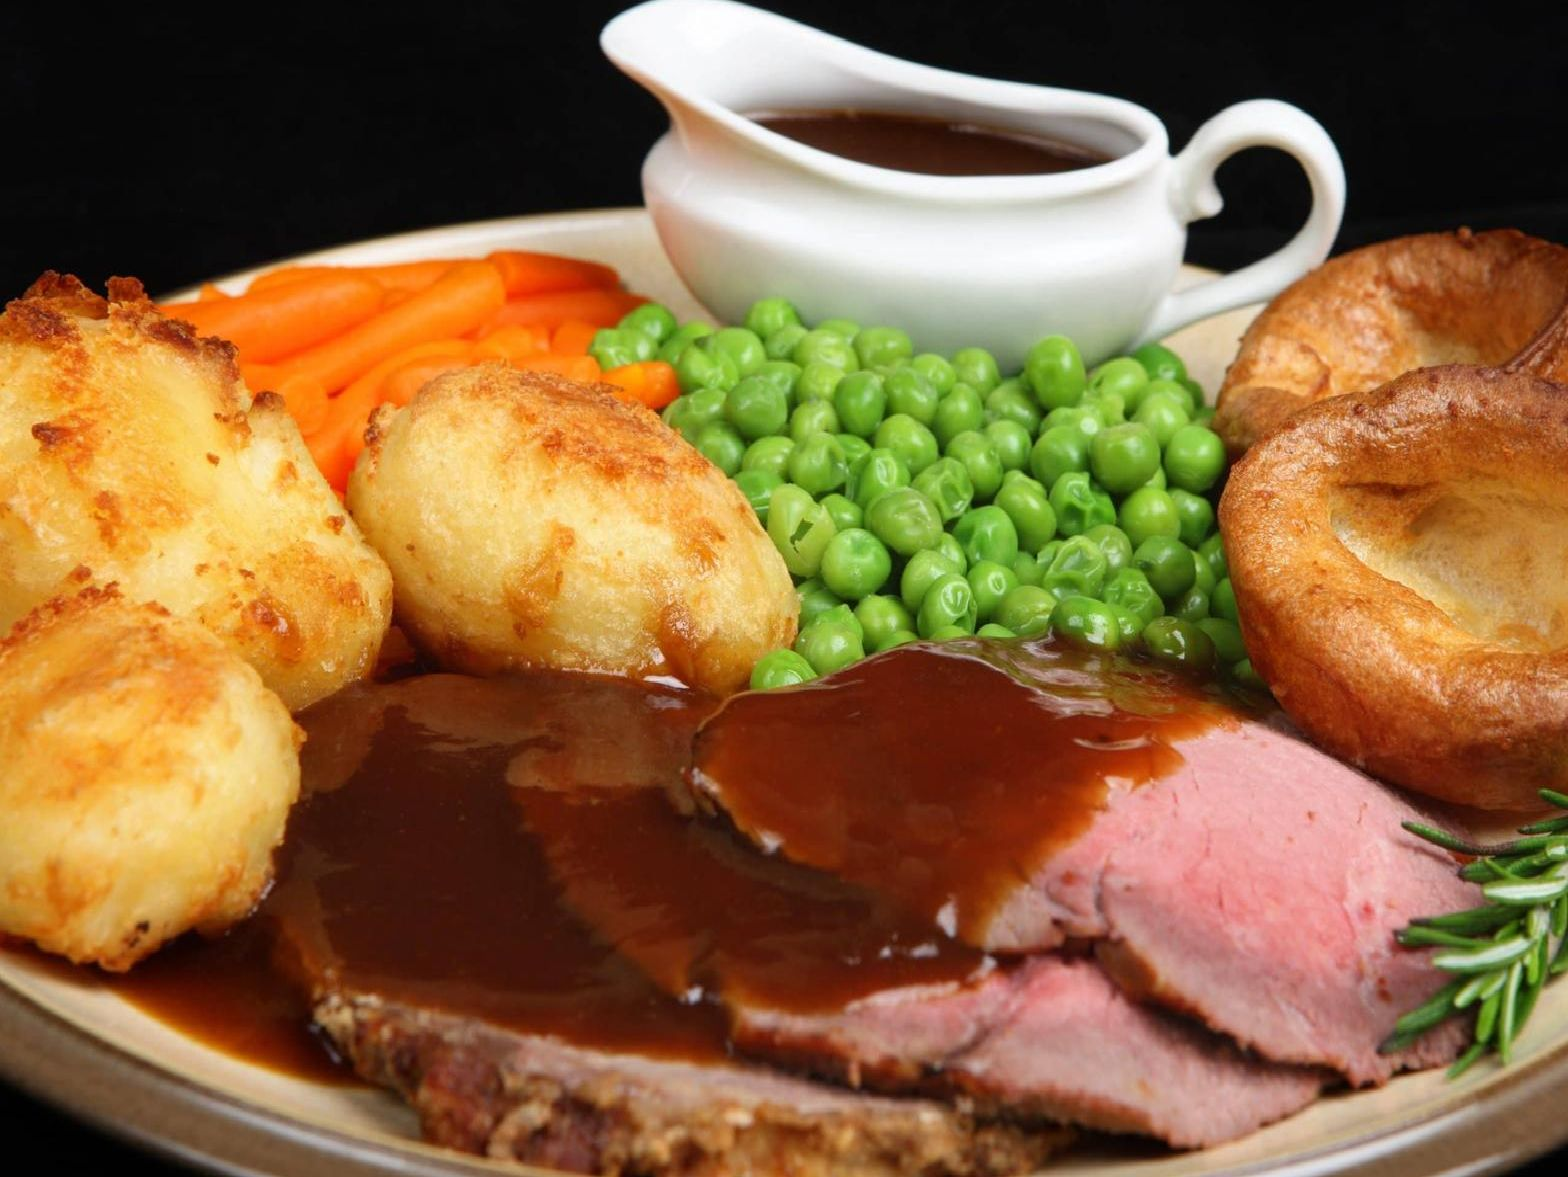 A traditional British carvery